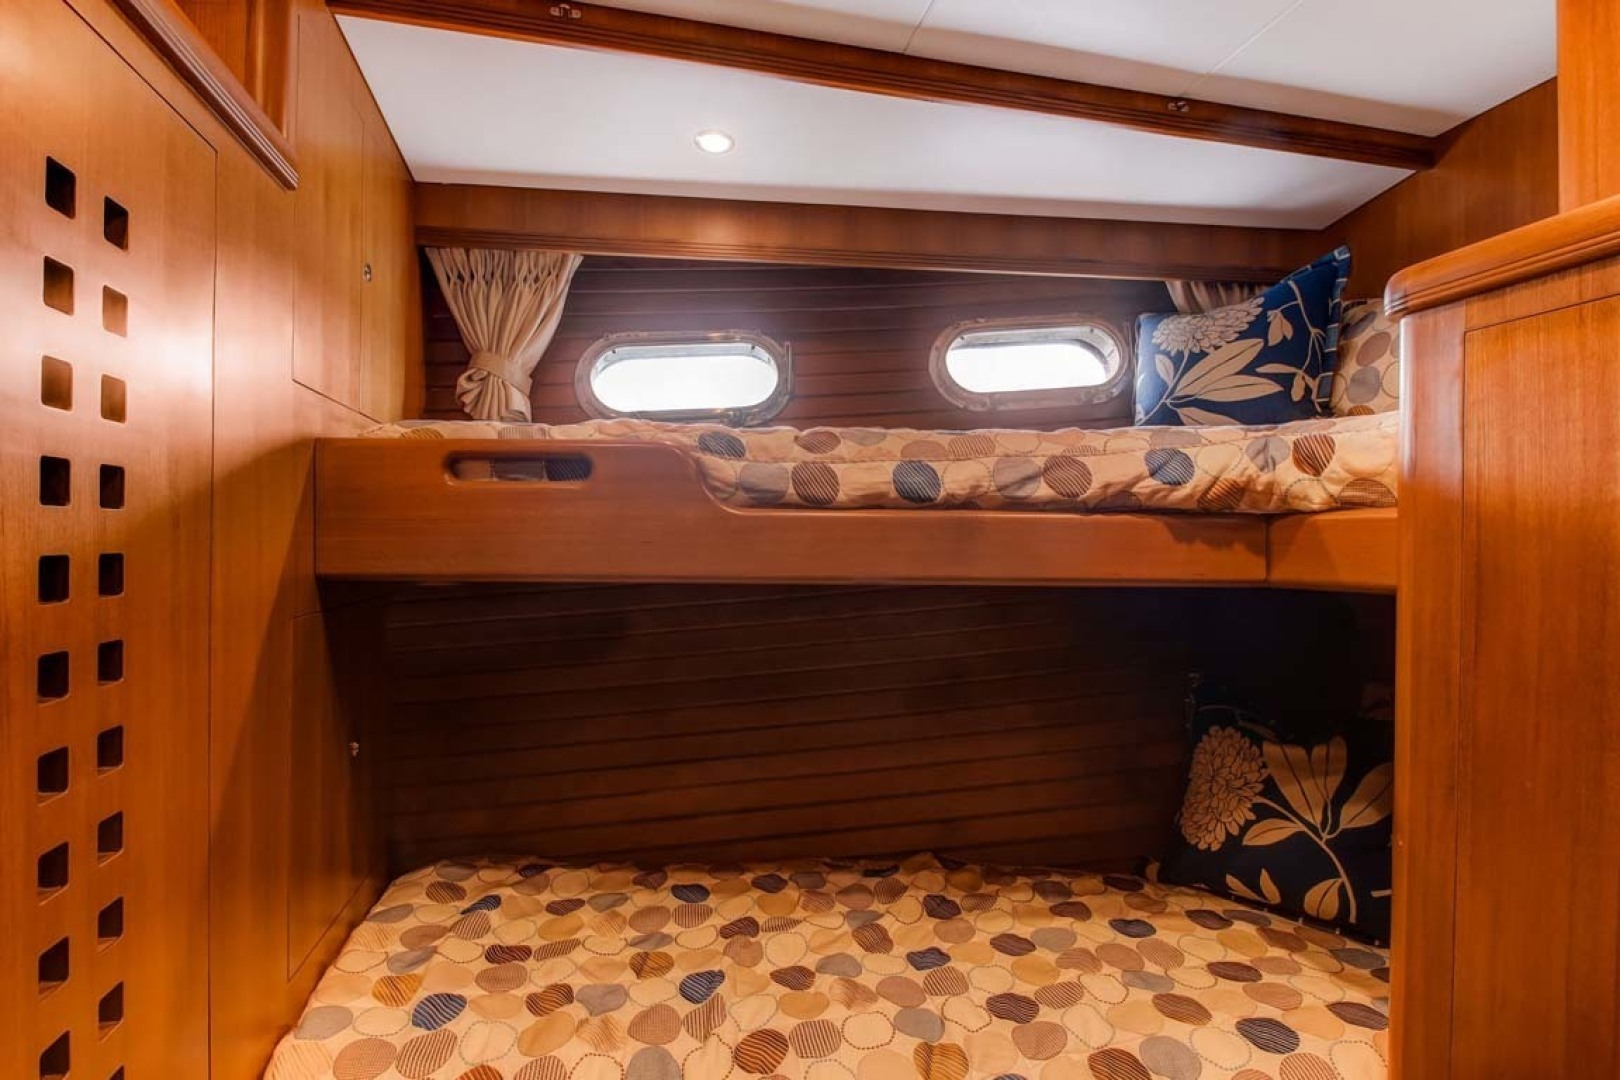 Selene-60 Ocean Trawler 2010-Gypsy Magic Jacksonville-Florida-United States-Midship Bunks-1346765 | Thumbnail